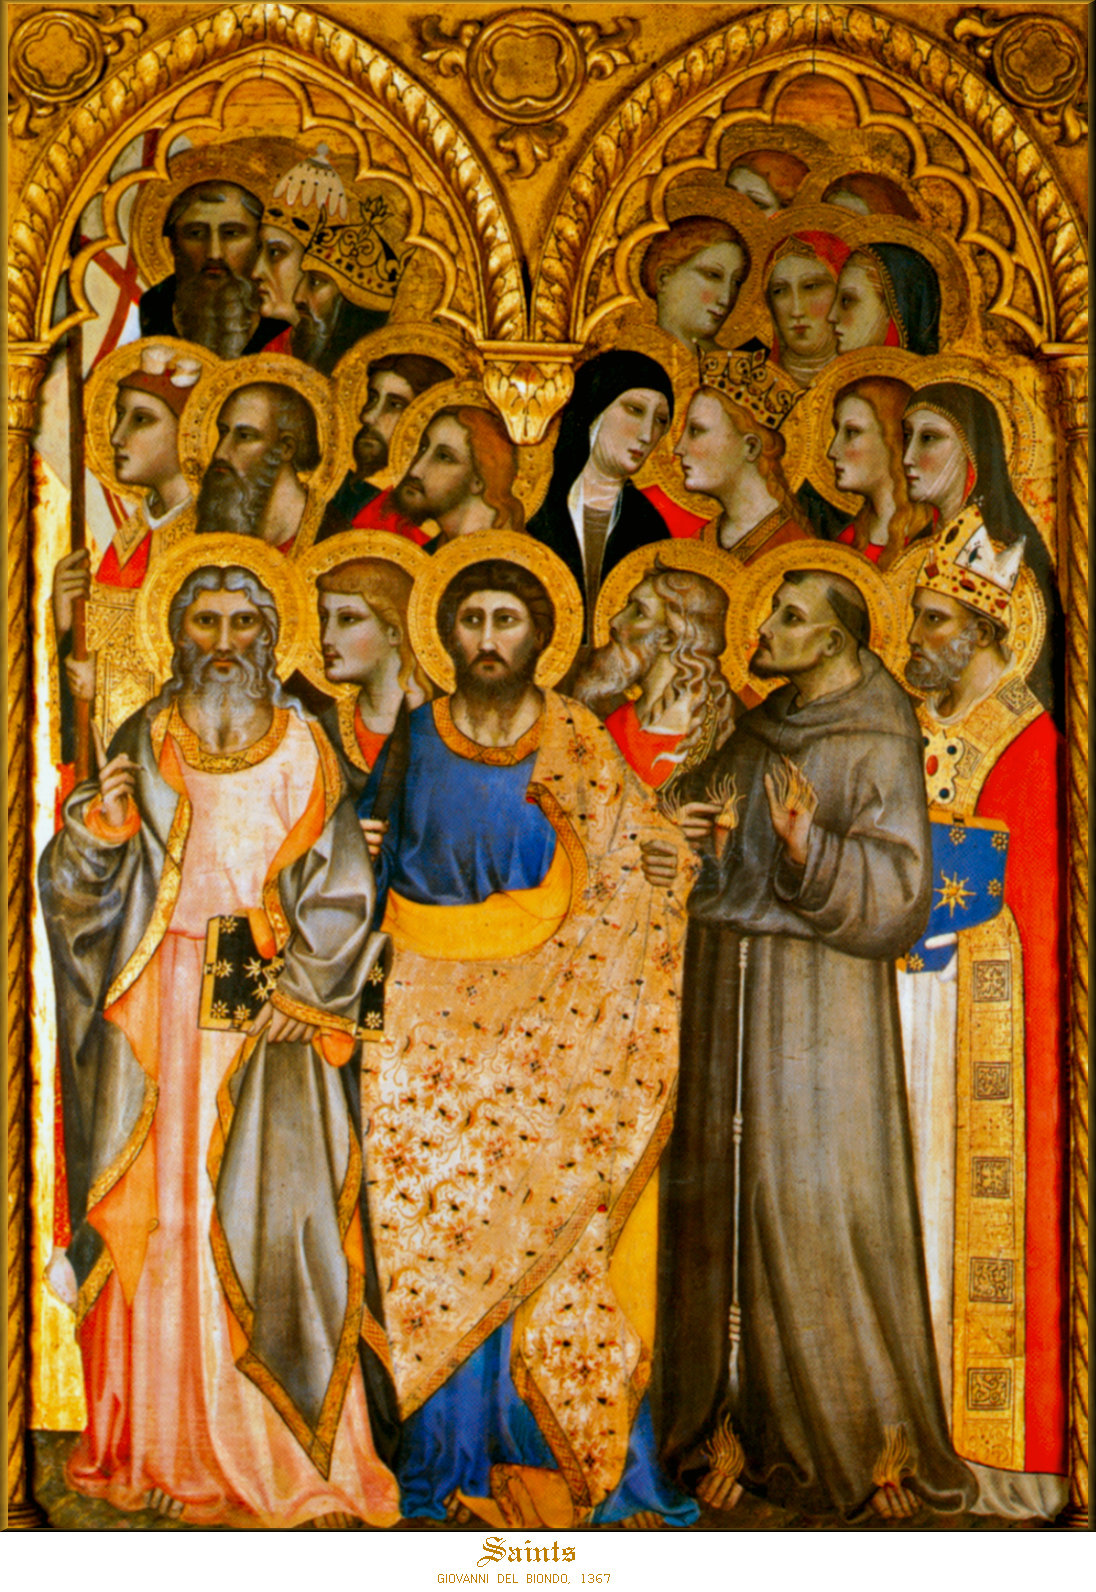 All Saints' Day - Nov 1